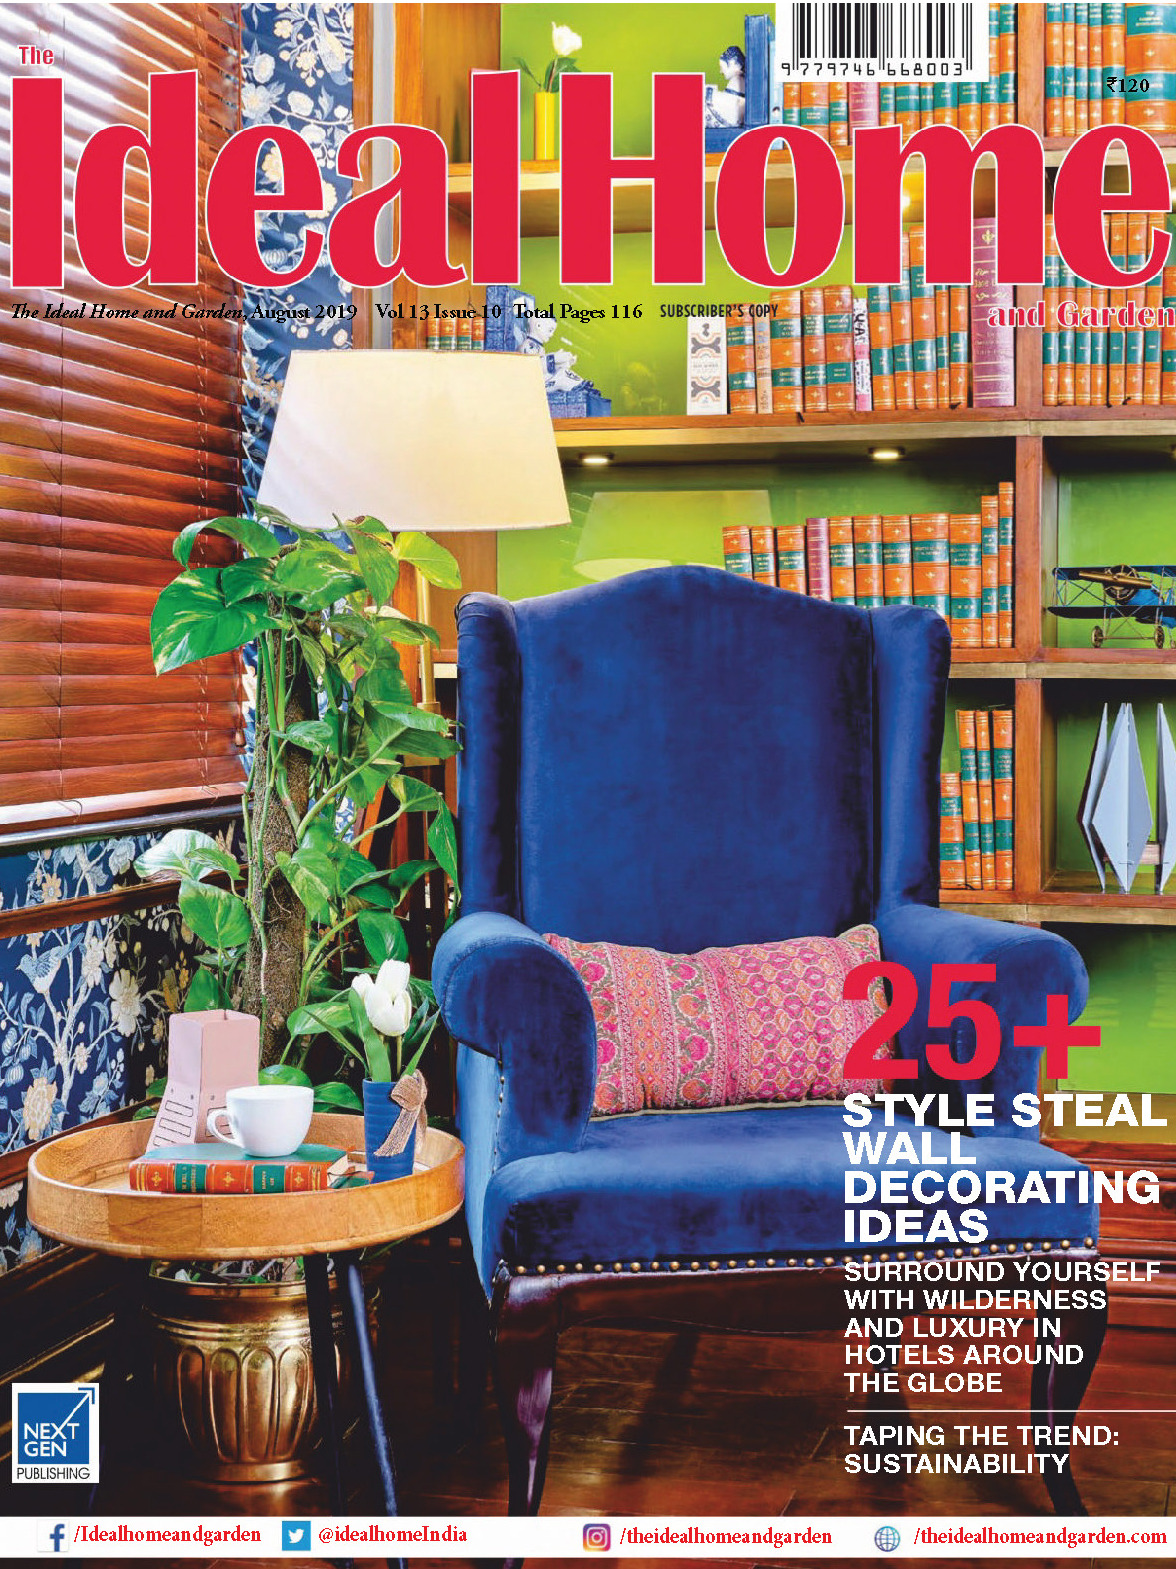 《The Ideal Home and Garden》印度版理想的家园杂志2019年08月号